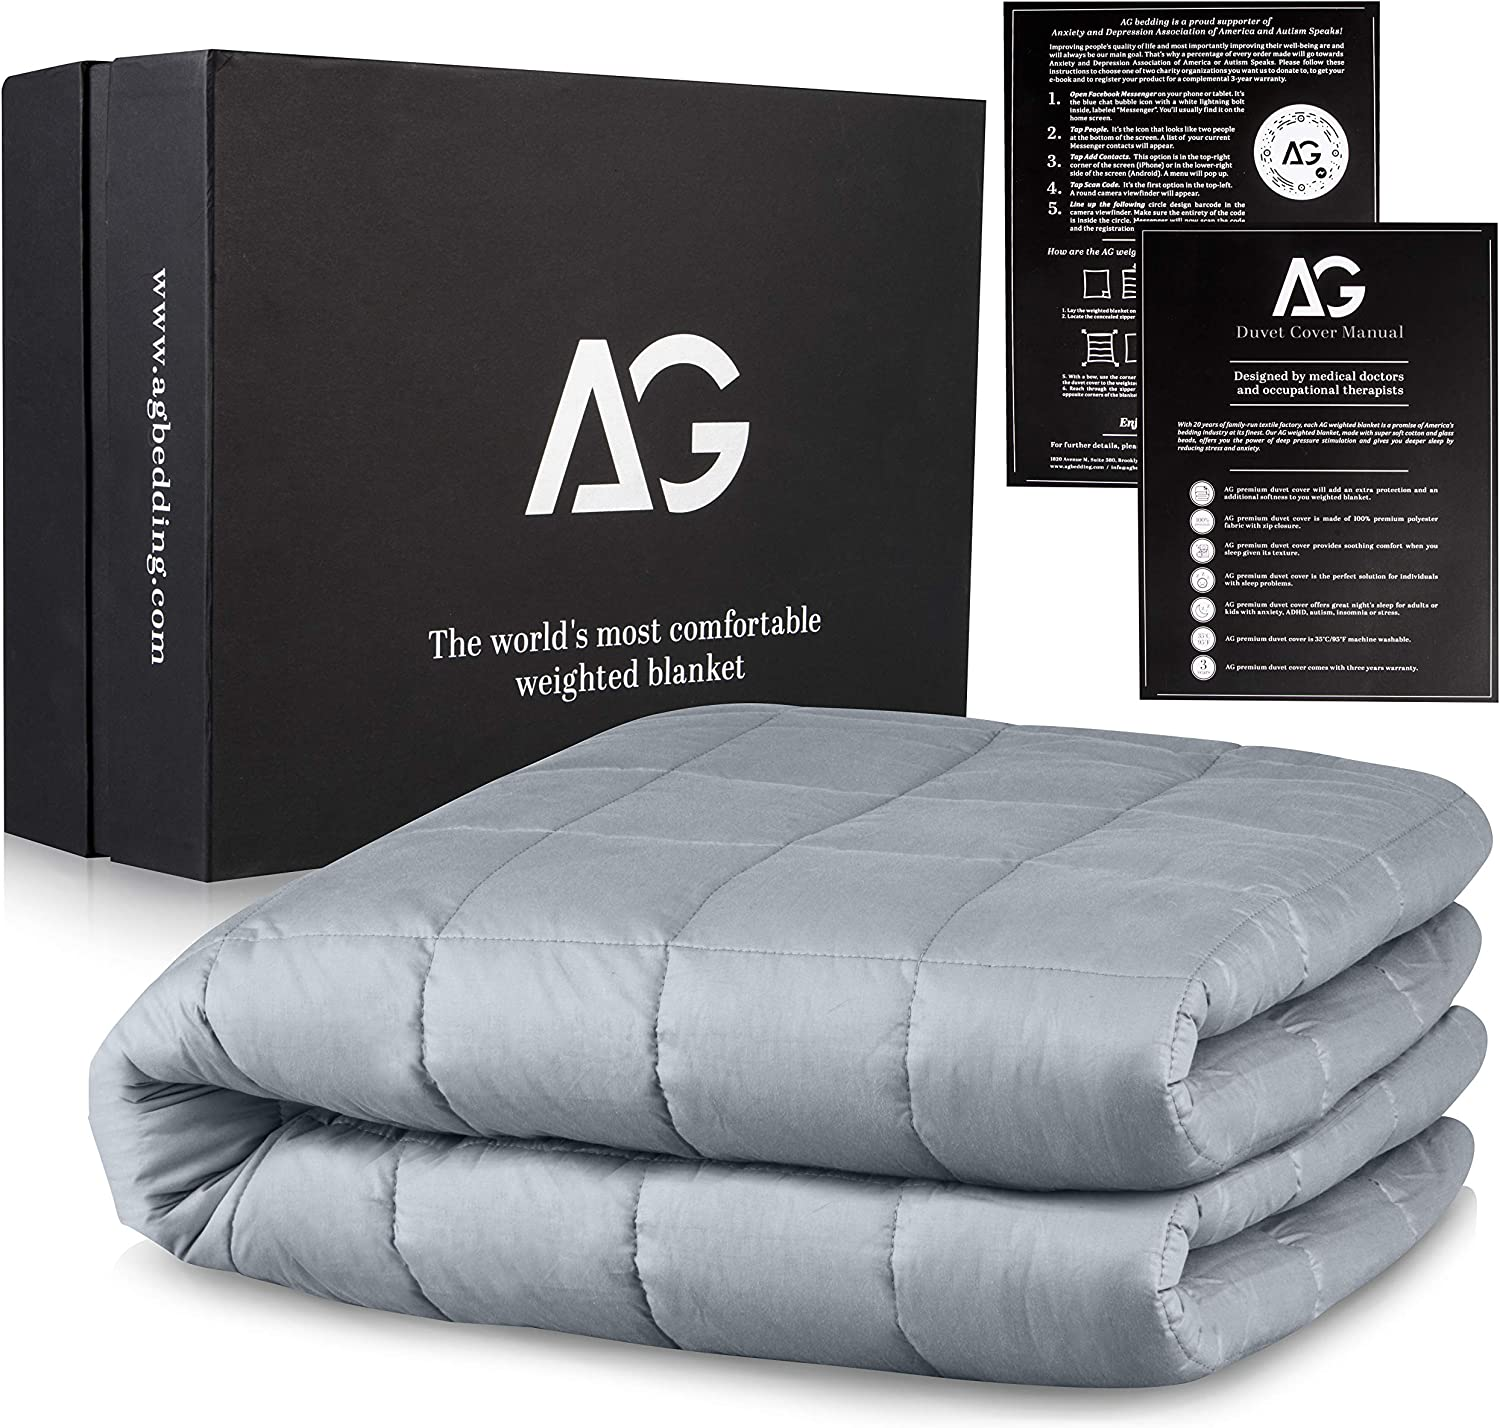 "AG Premium Weighted Blanket for Adults, 20 lbs 60""x80"", Heavy Blanket for Kids, Cooling Blanket 